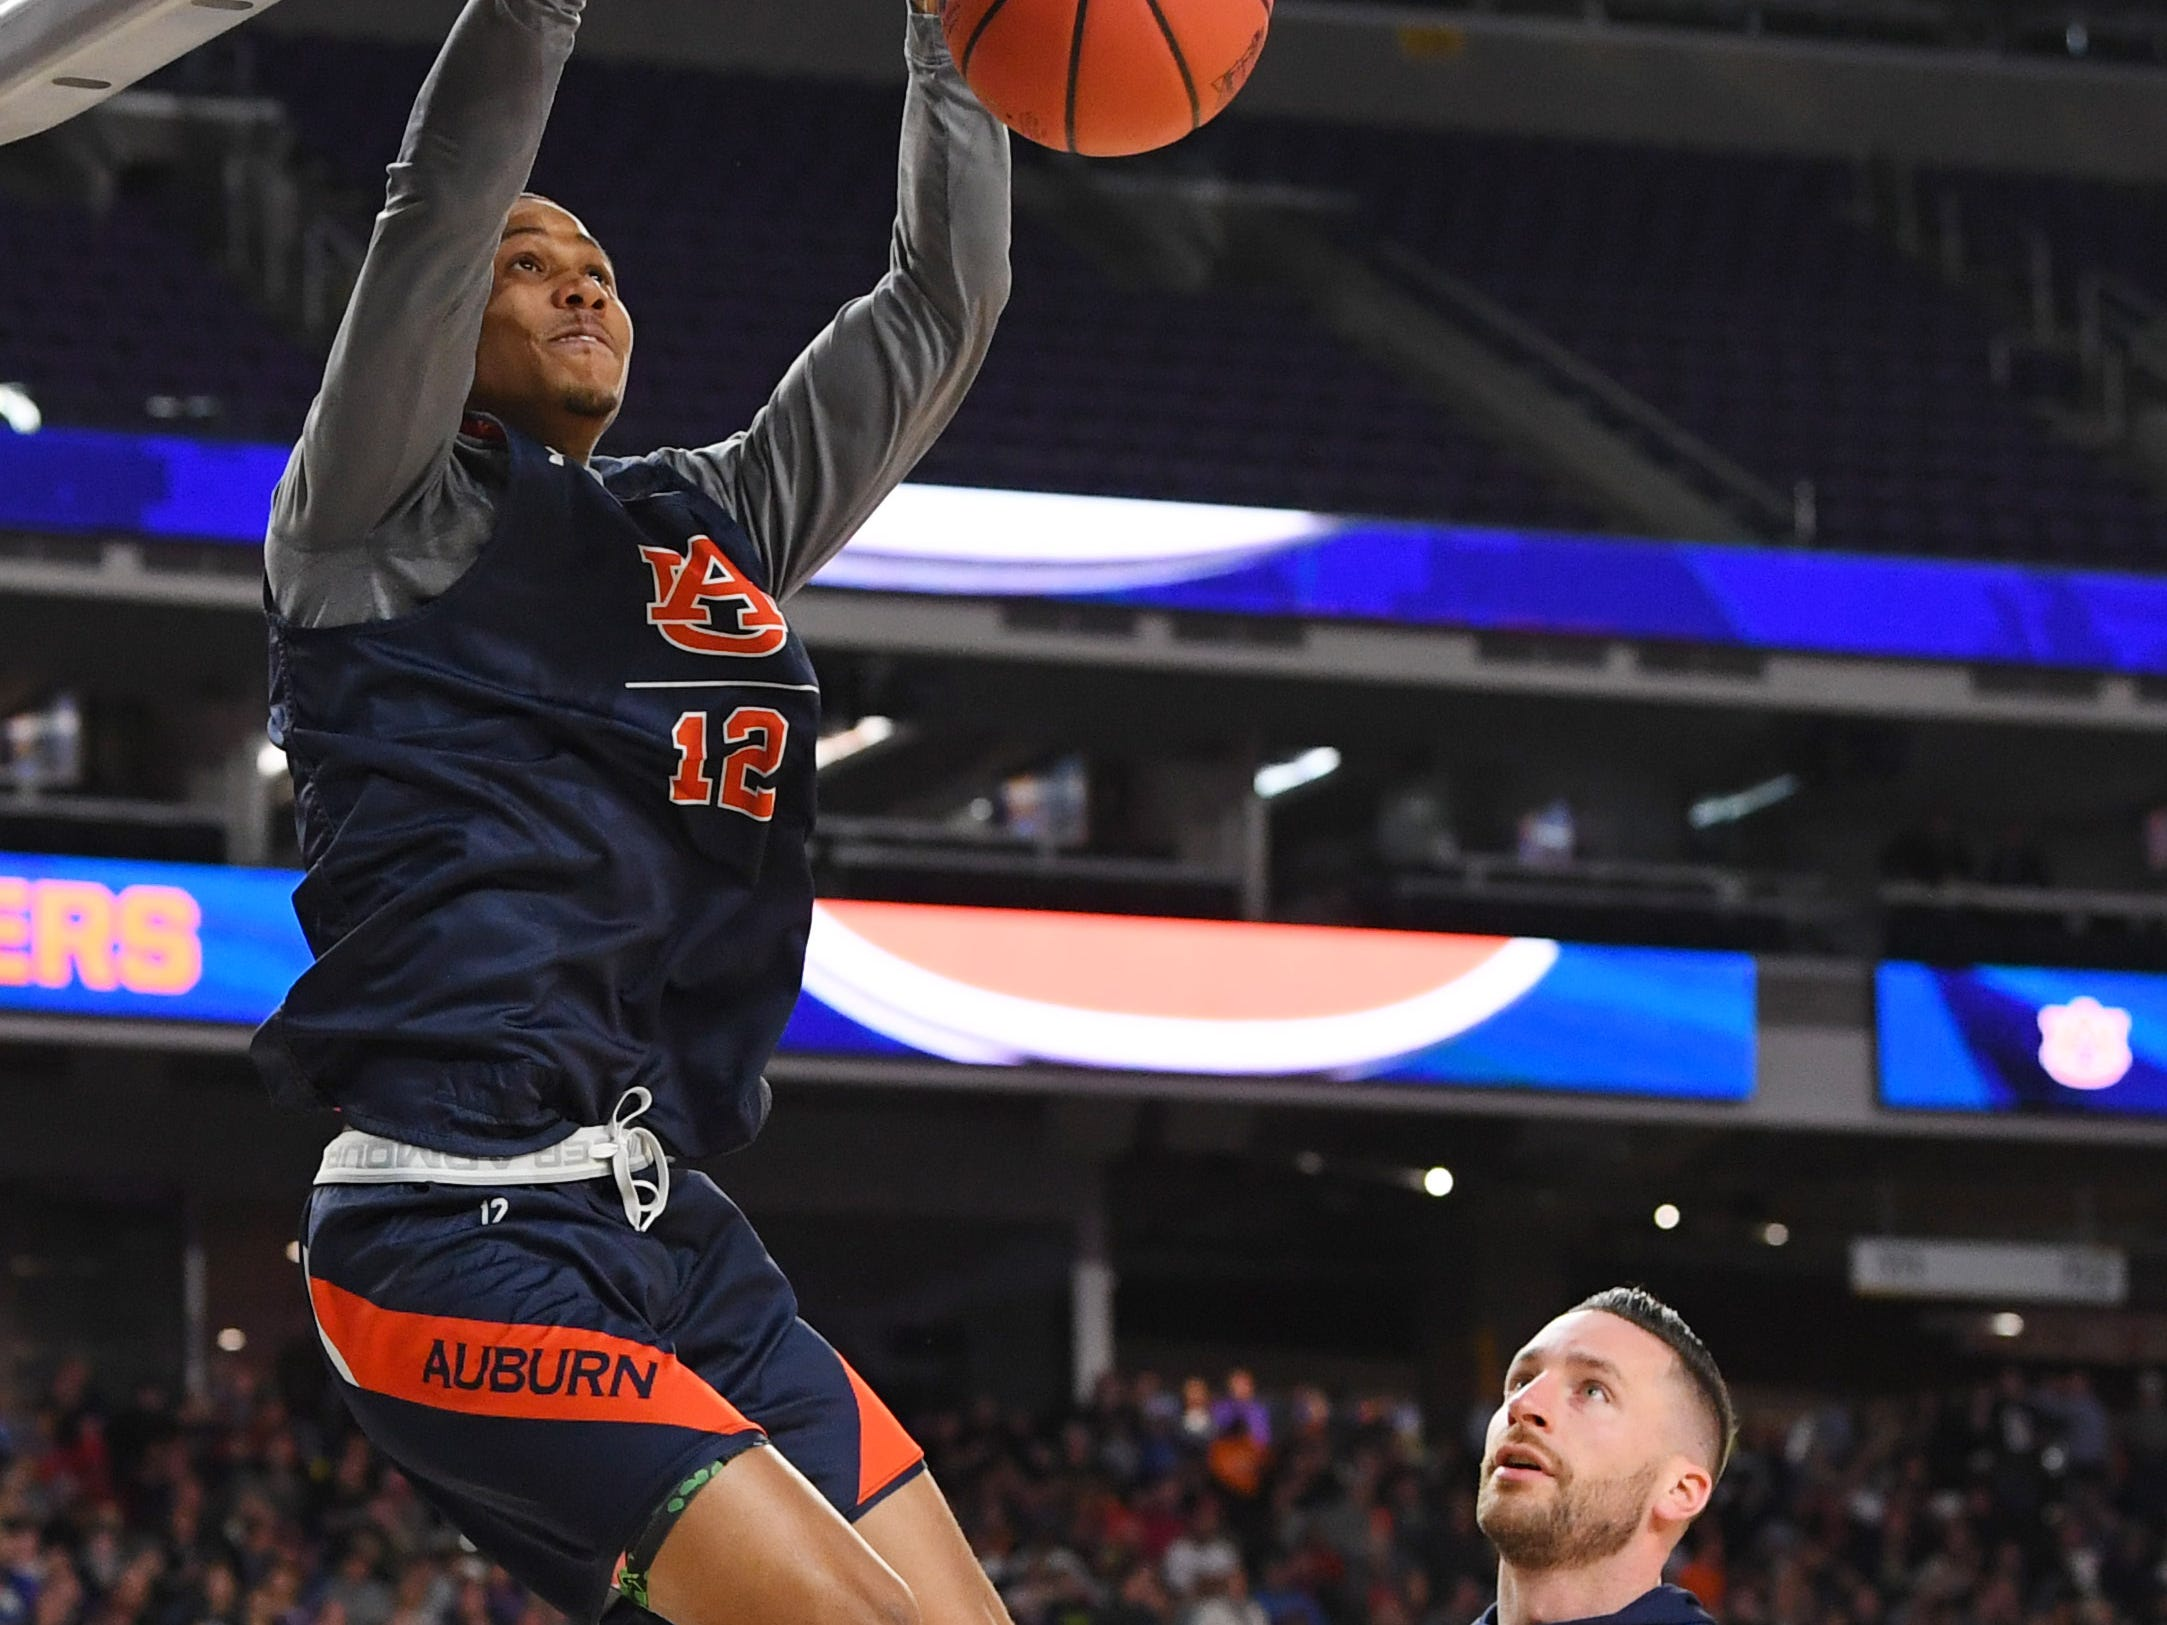 Apr 5, 2019; Minneapolis, MN, USA; Auburn Tigers guard J'Von McCormick (12) dunks th eball during practice for the 2019 men's Final Four at US Bank Stadium. Mandatory Credit: Robert Deutsch-USA TODAY Sports